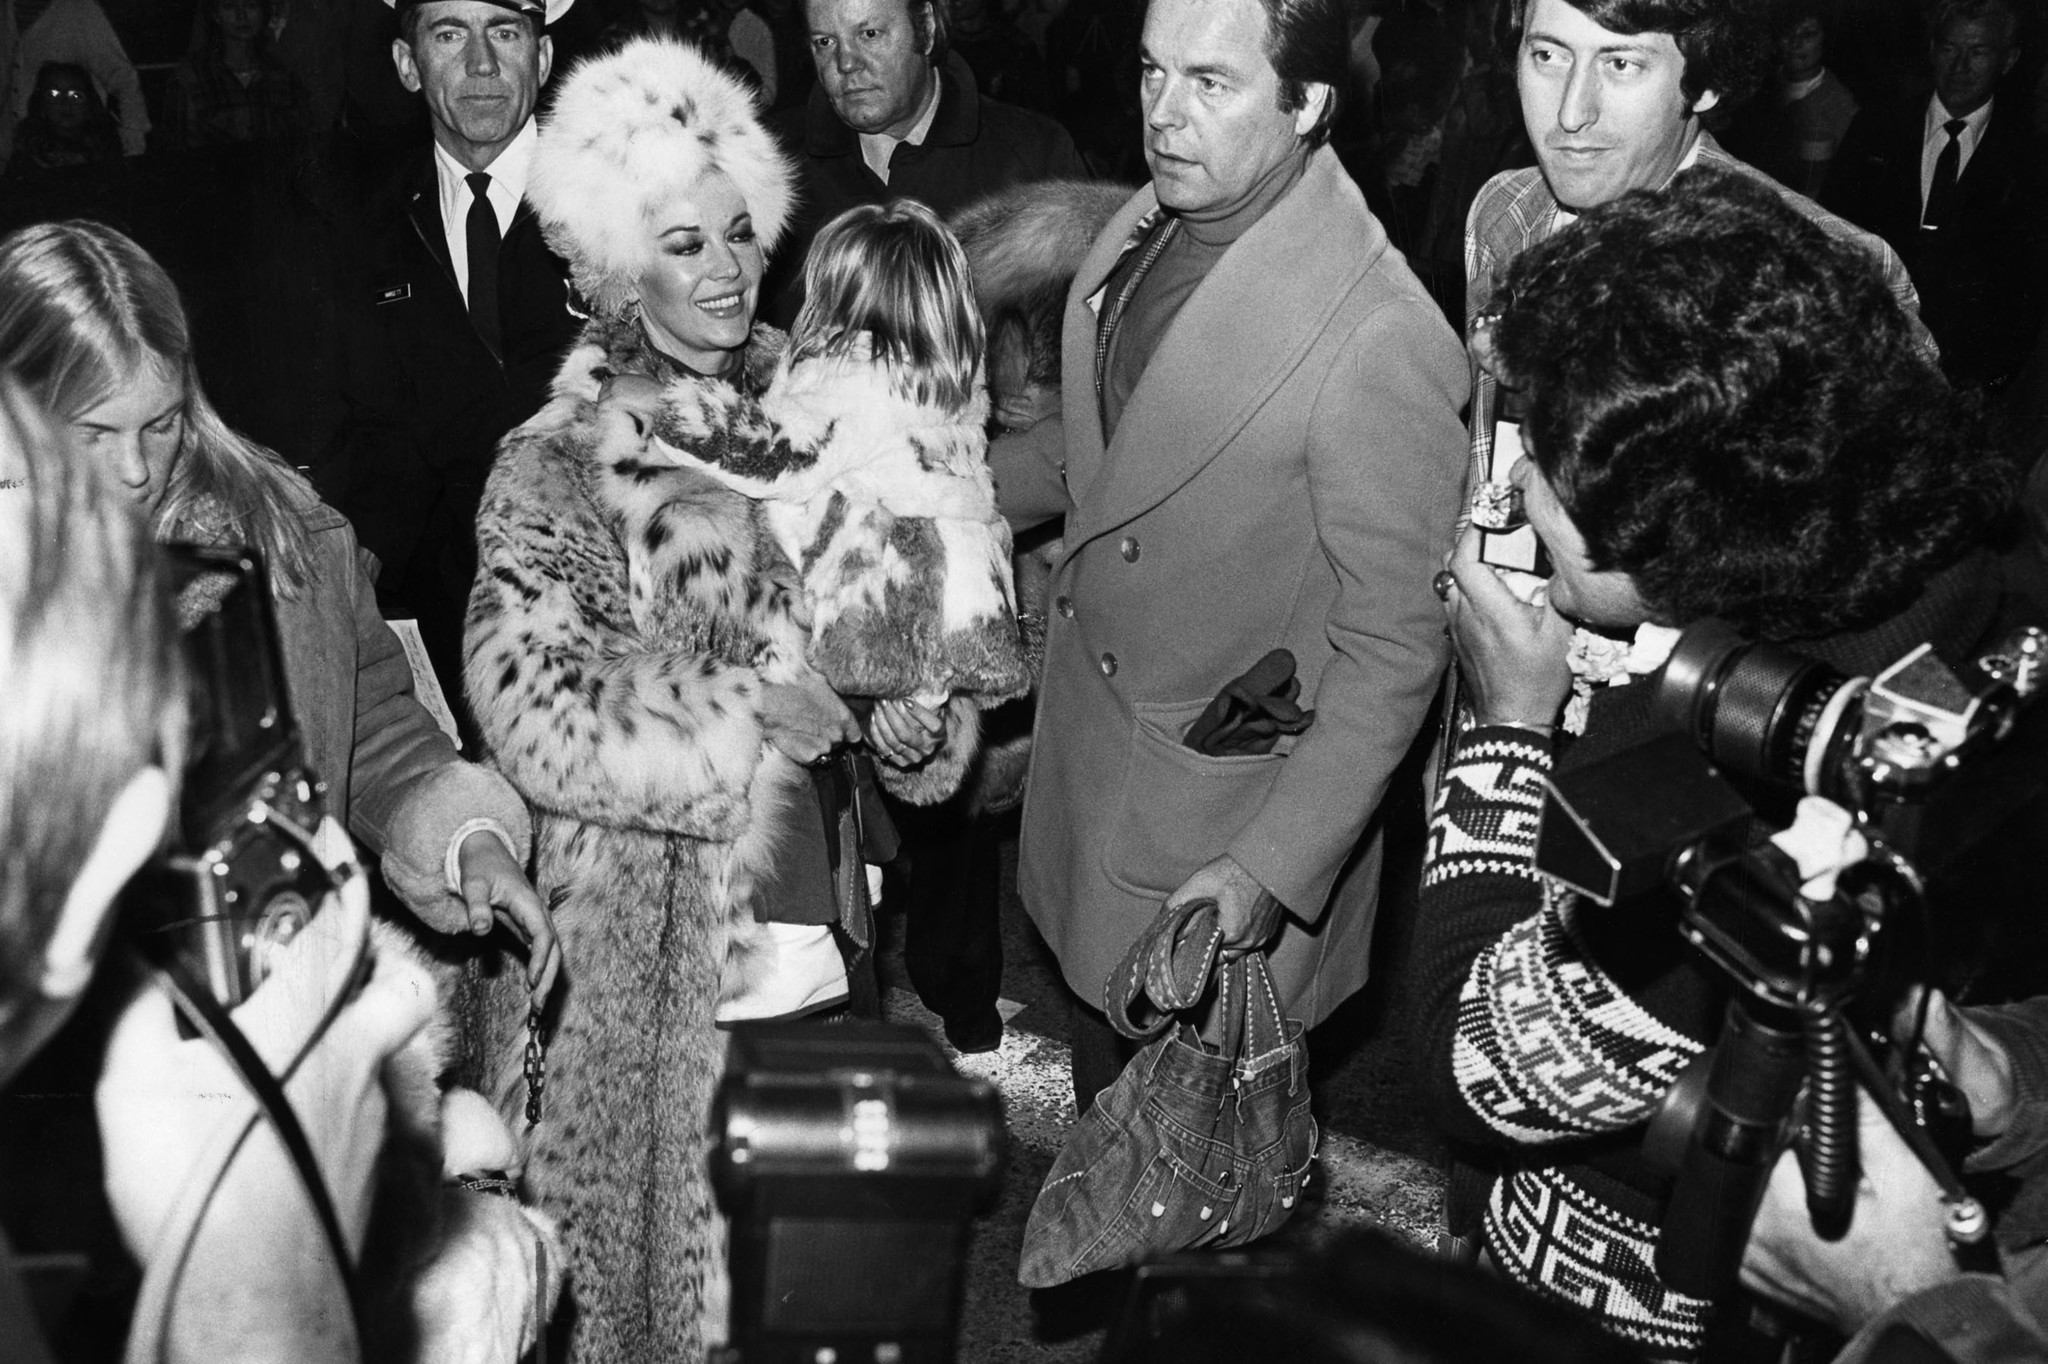 Nov. 28, 1976: Rogert Wagner and wife Natalie Wood, with youngest daughter Courtney, are mobbed by c